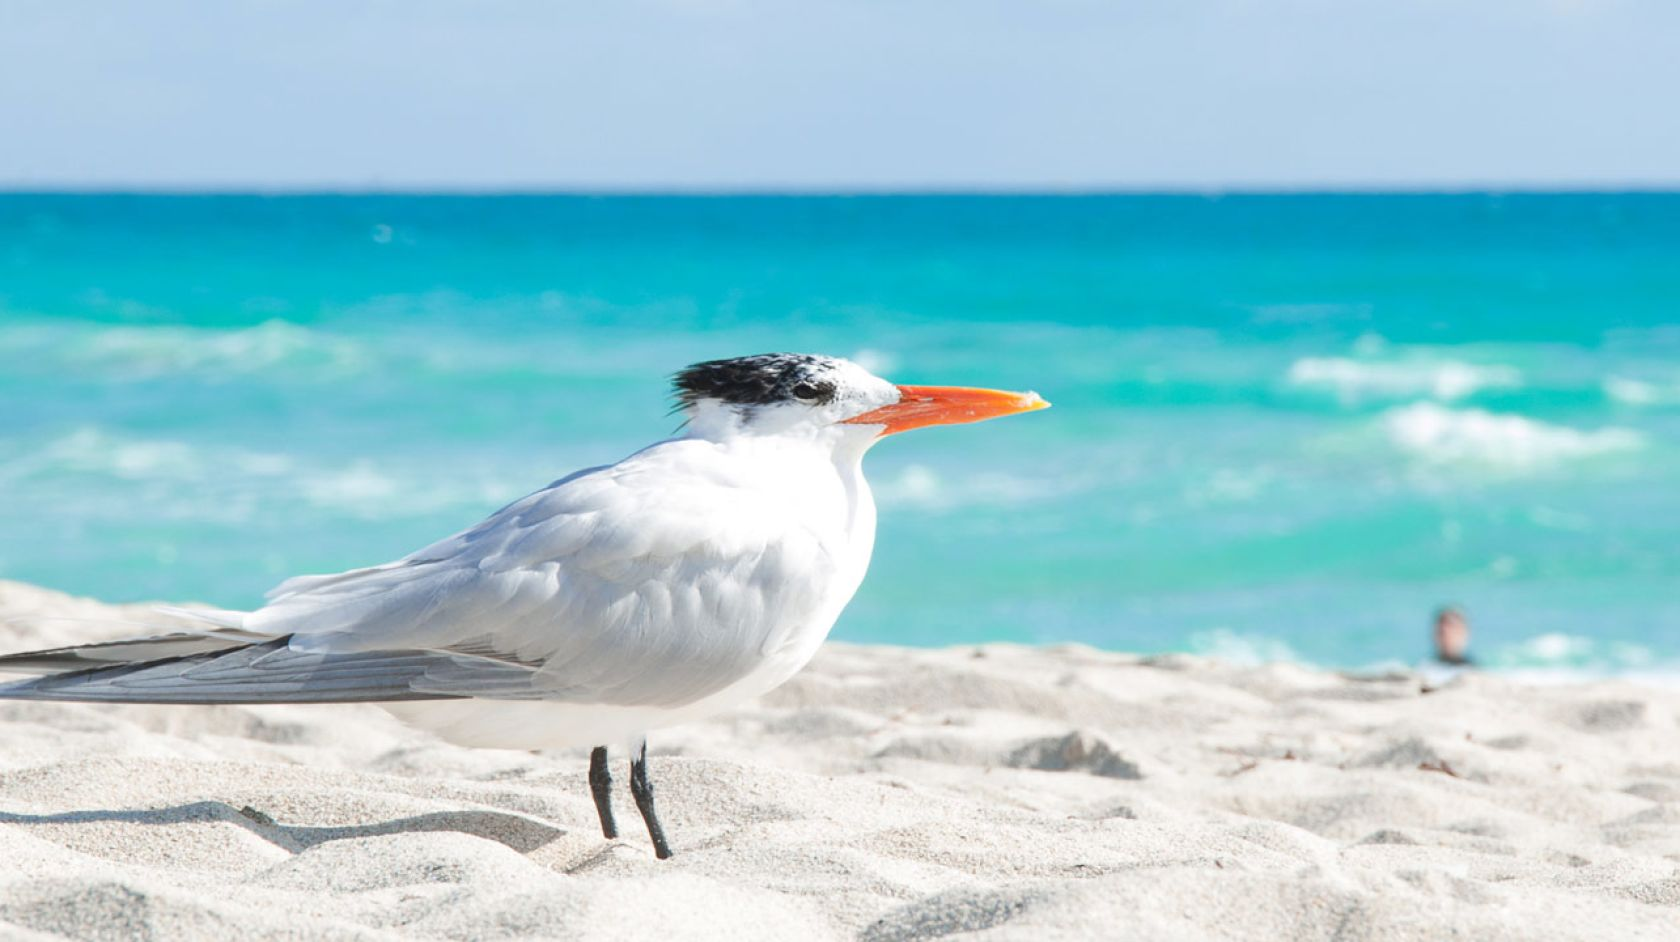 A Bird Sitting On Top Of A Sandy Beach